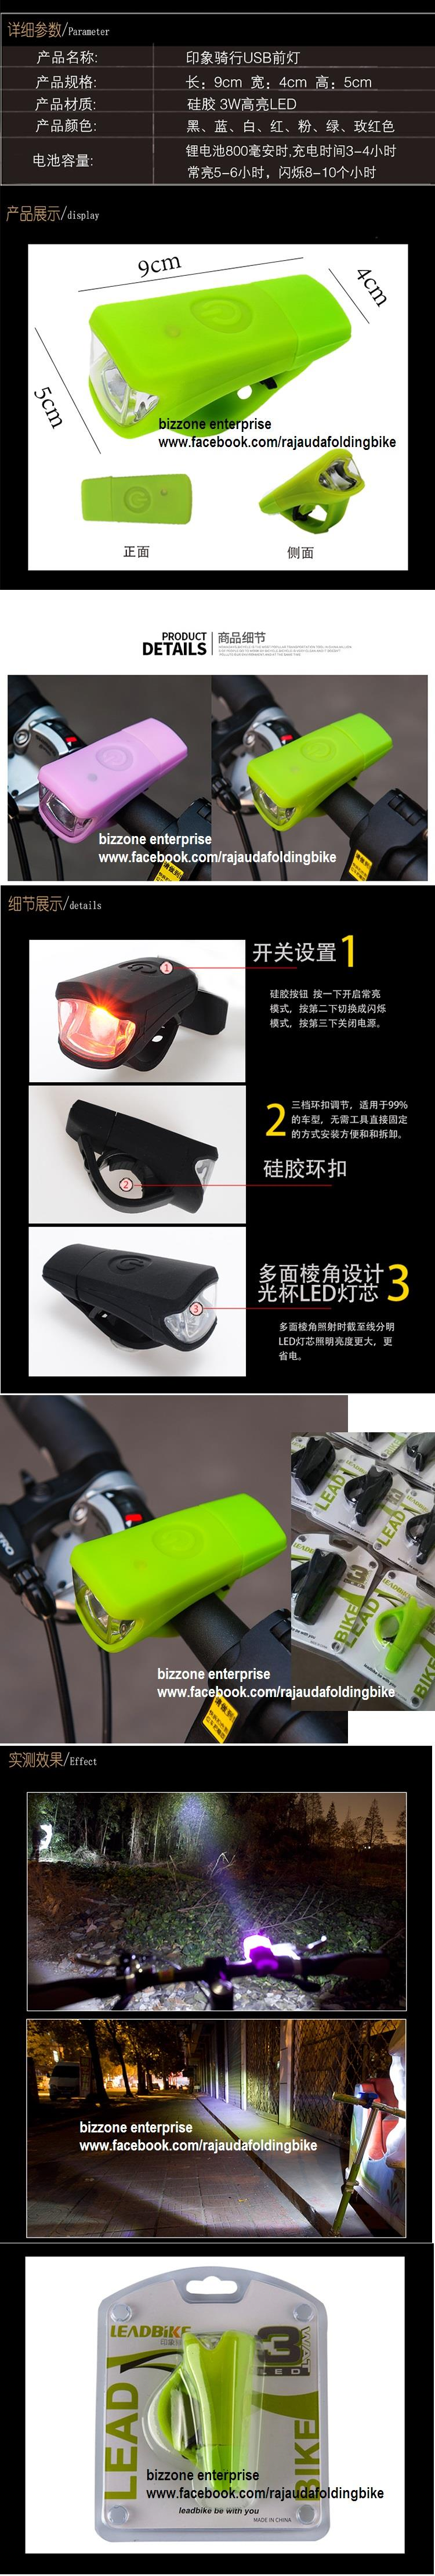 USB CHARGE FRONT LED LIGHT CYCLING BIKE BICYCLE ( lasting 8h garantee)